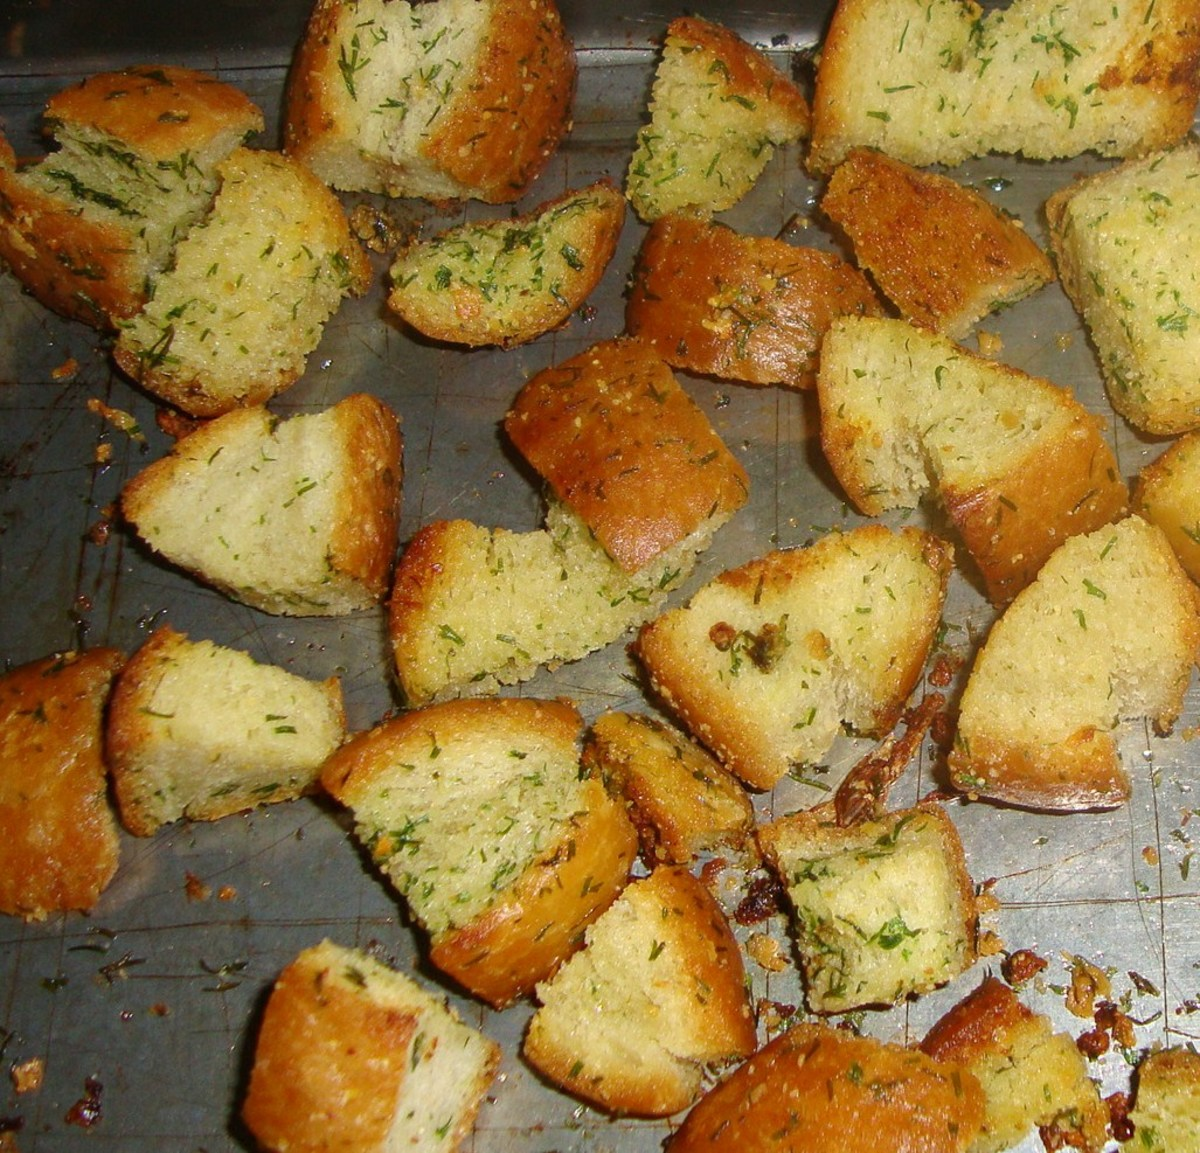 Croutons offer up delectable hints of real butter, garlic, and parsley. These crispy,  flavorful bites are delicious as a topper for salad.